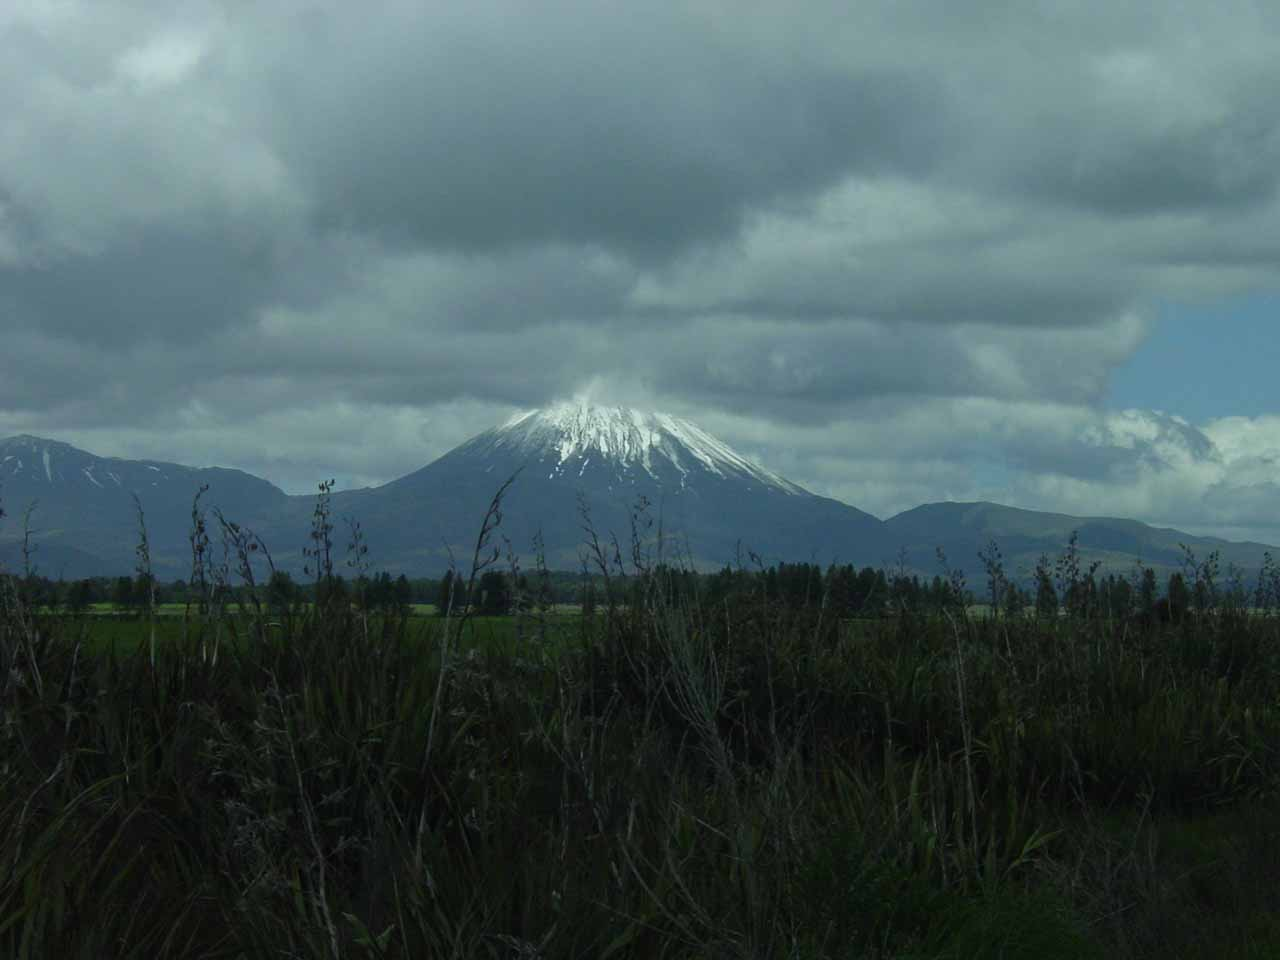 Looking towards Mt Ngauruhoe from SH47